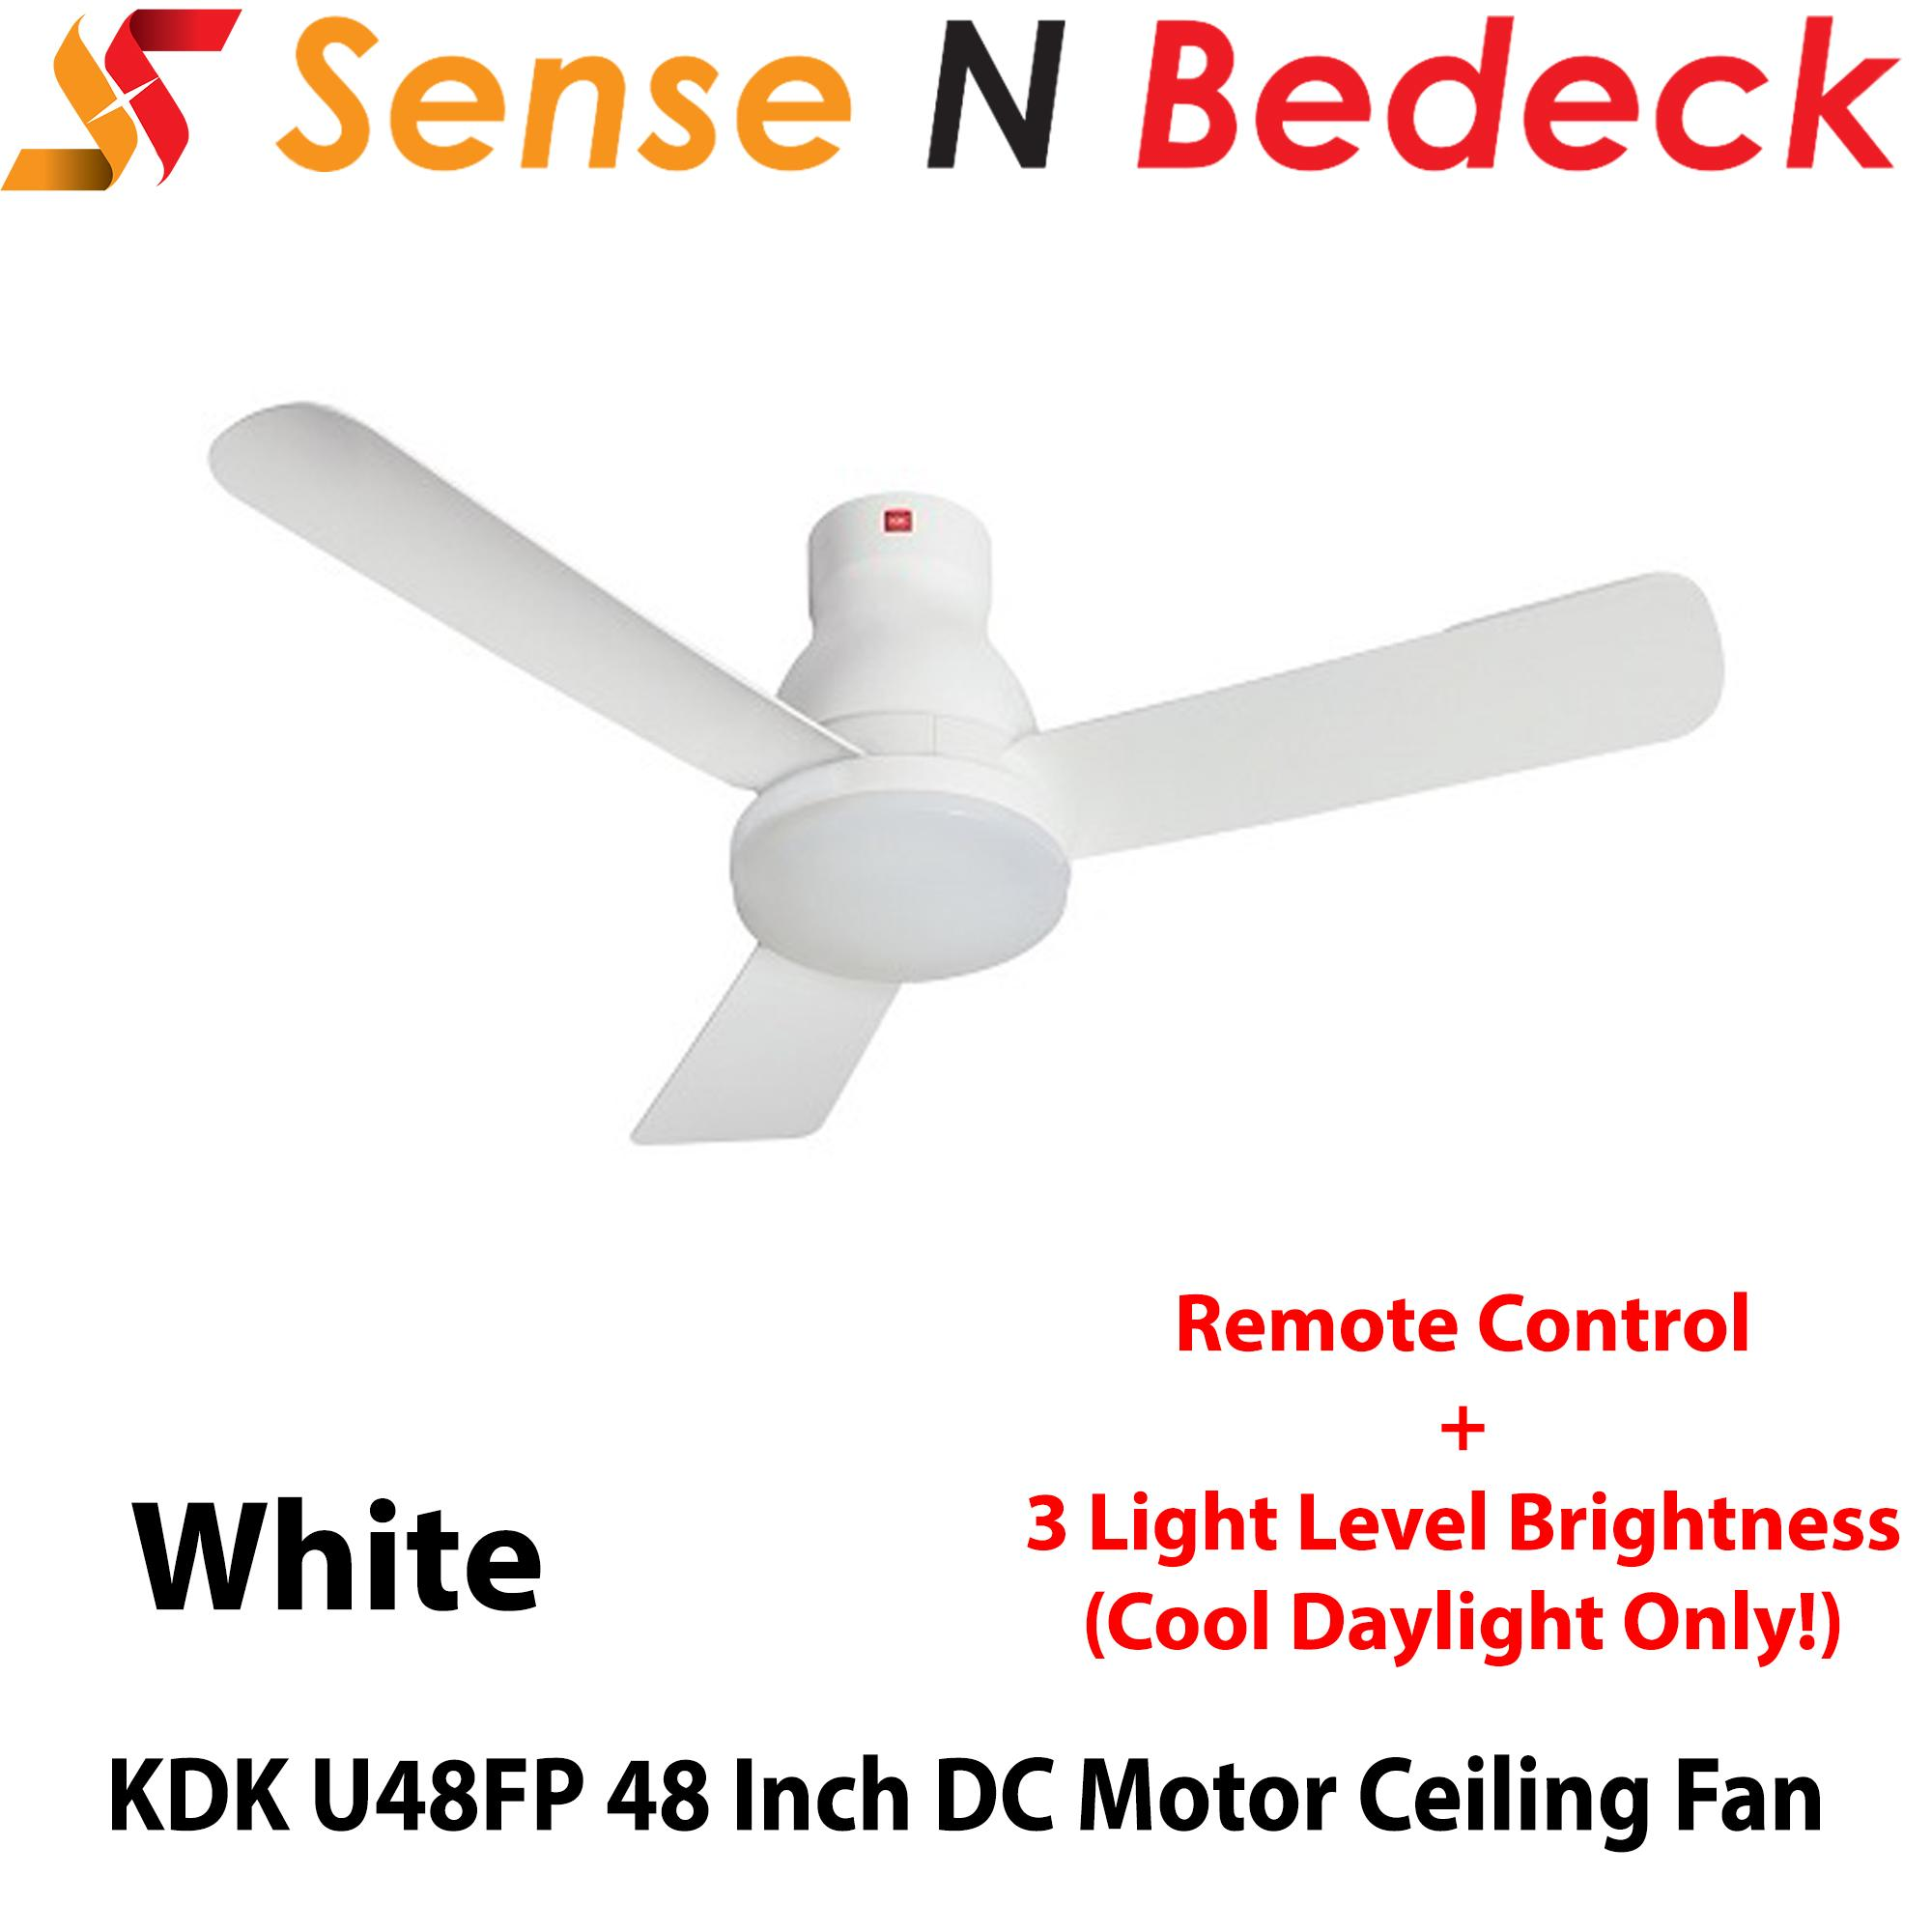 KDK U48FP 48 Inch LED DC Motor Ceiling Fan